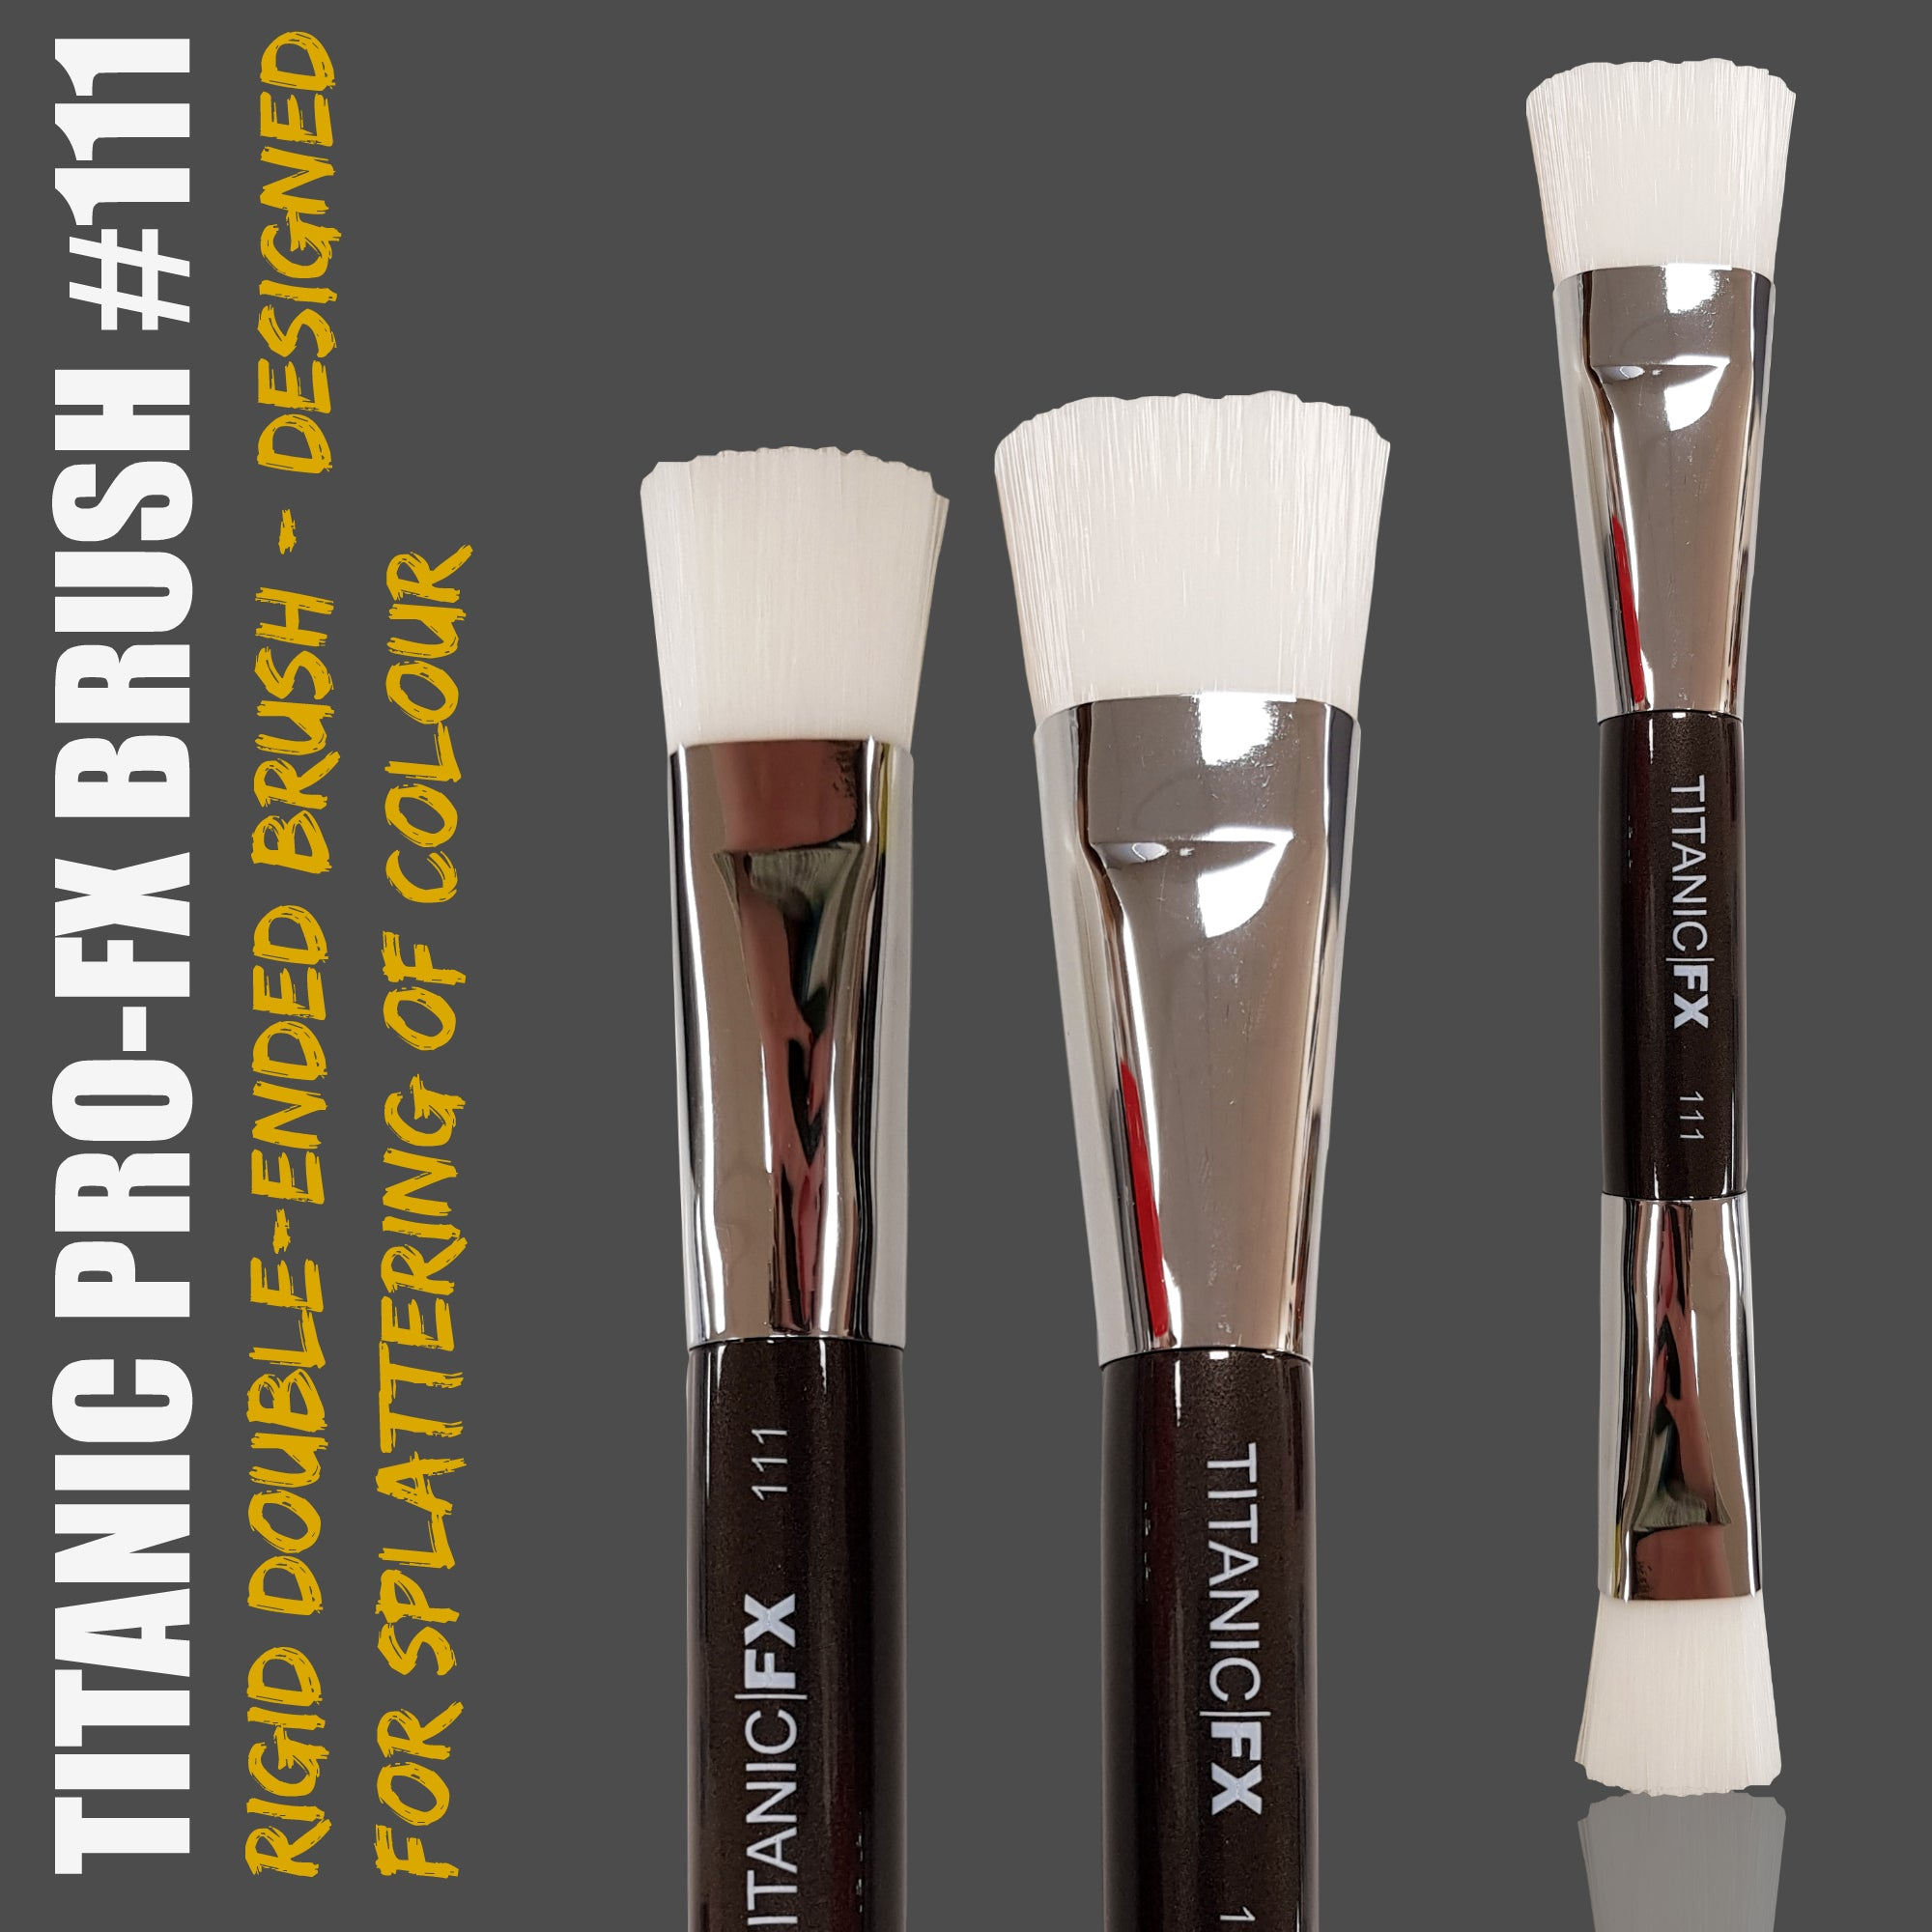 NEW: Titanic Pro-FX Brush 111 - Double-ended Splatter Brush